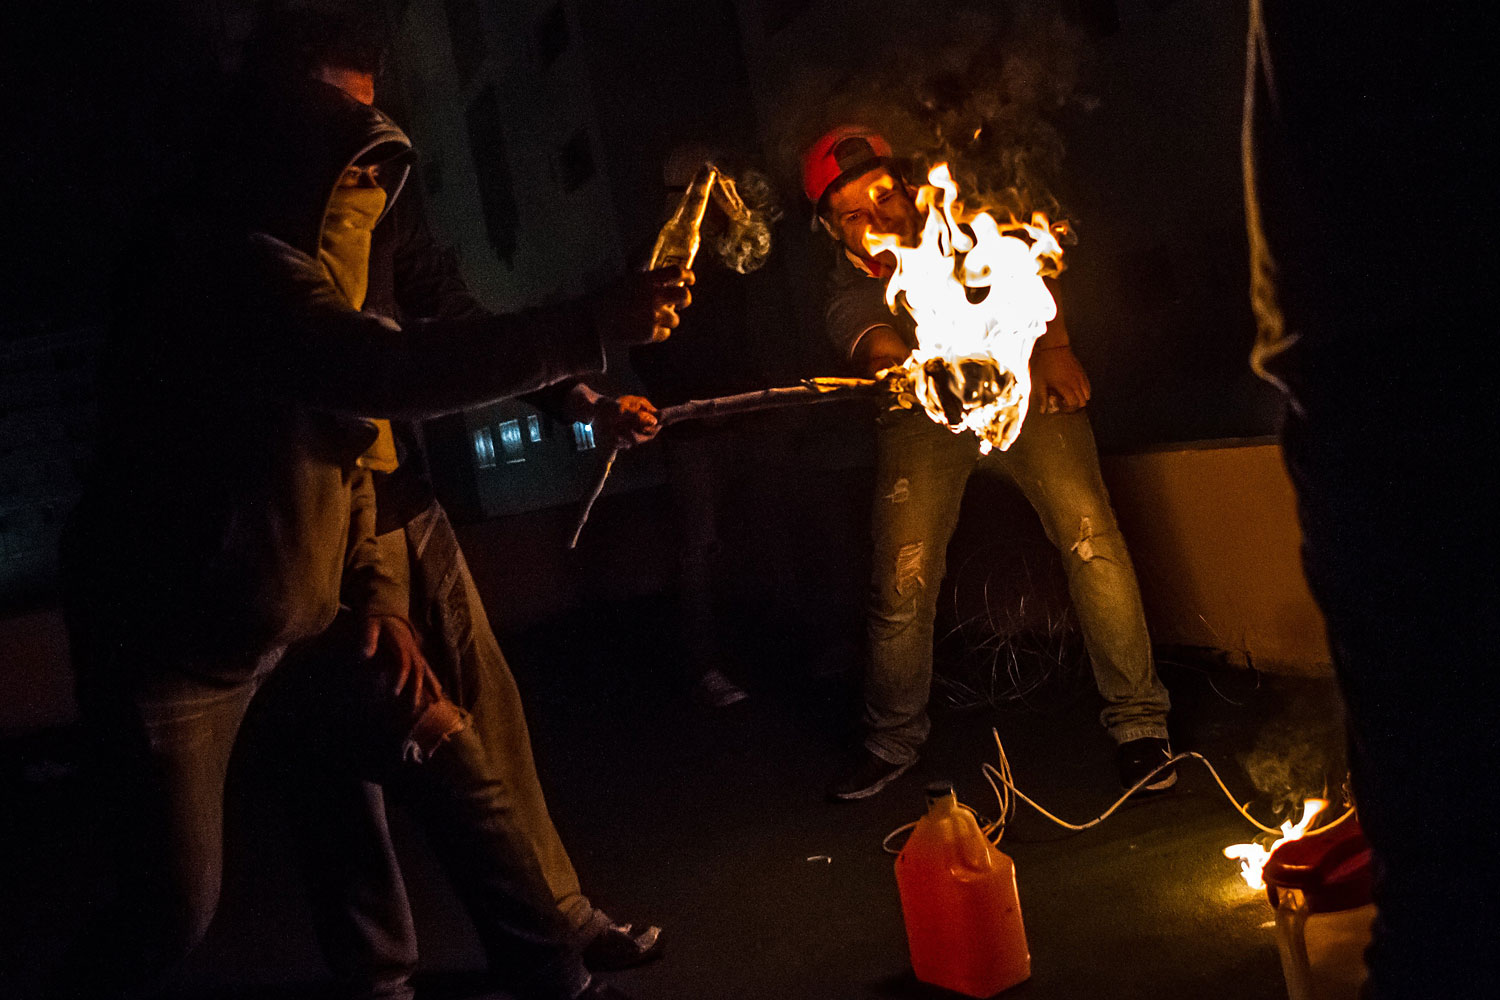 Protesters on a rooftop light Molotov cocktails to throw at police below in San Cristobal, Venezuela, in the pre-dawn hours of Feb. 24, 2014.